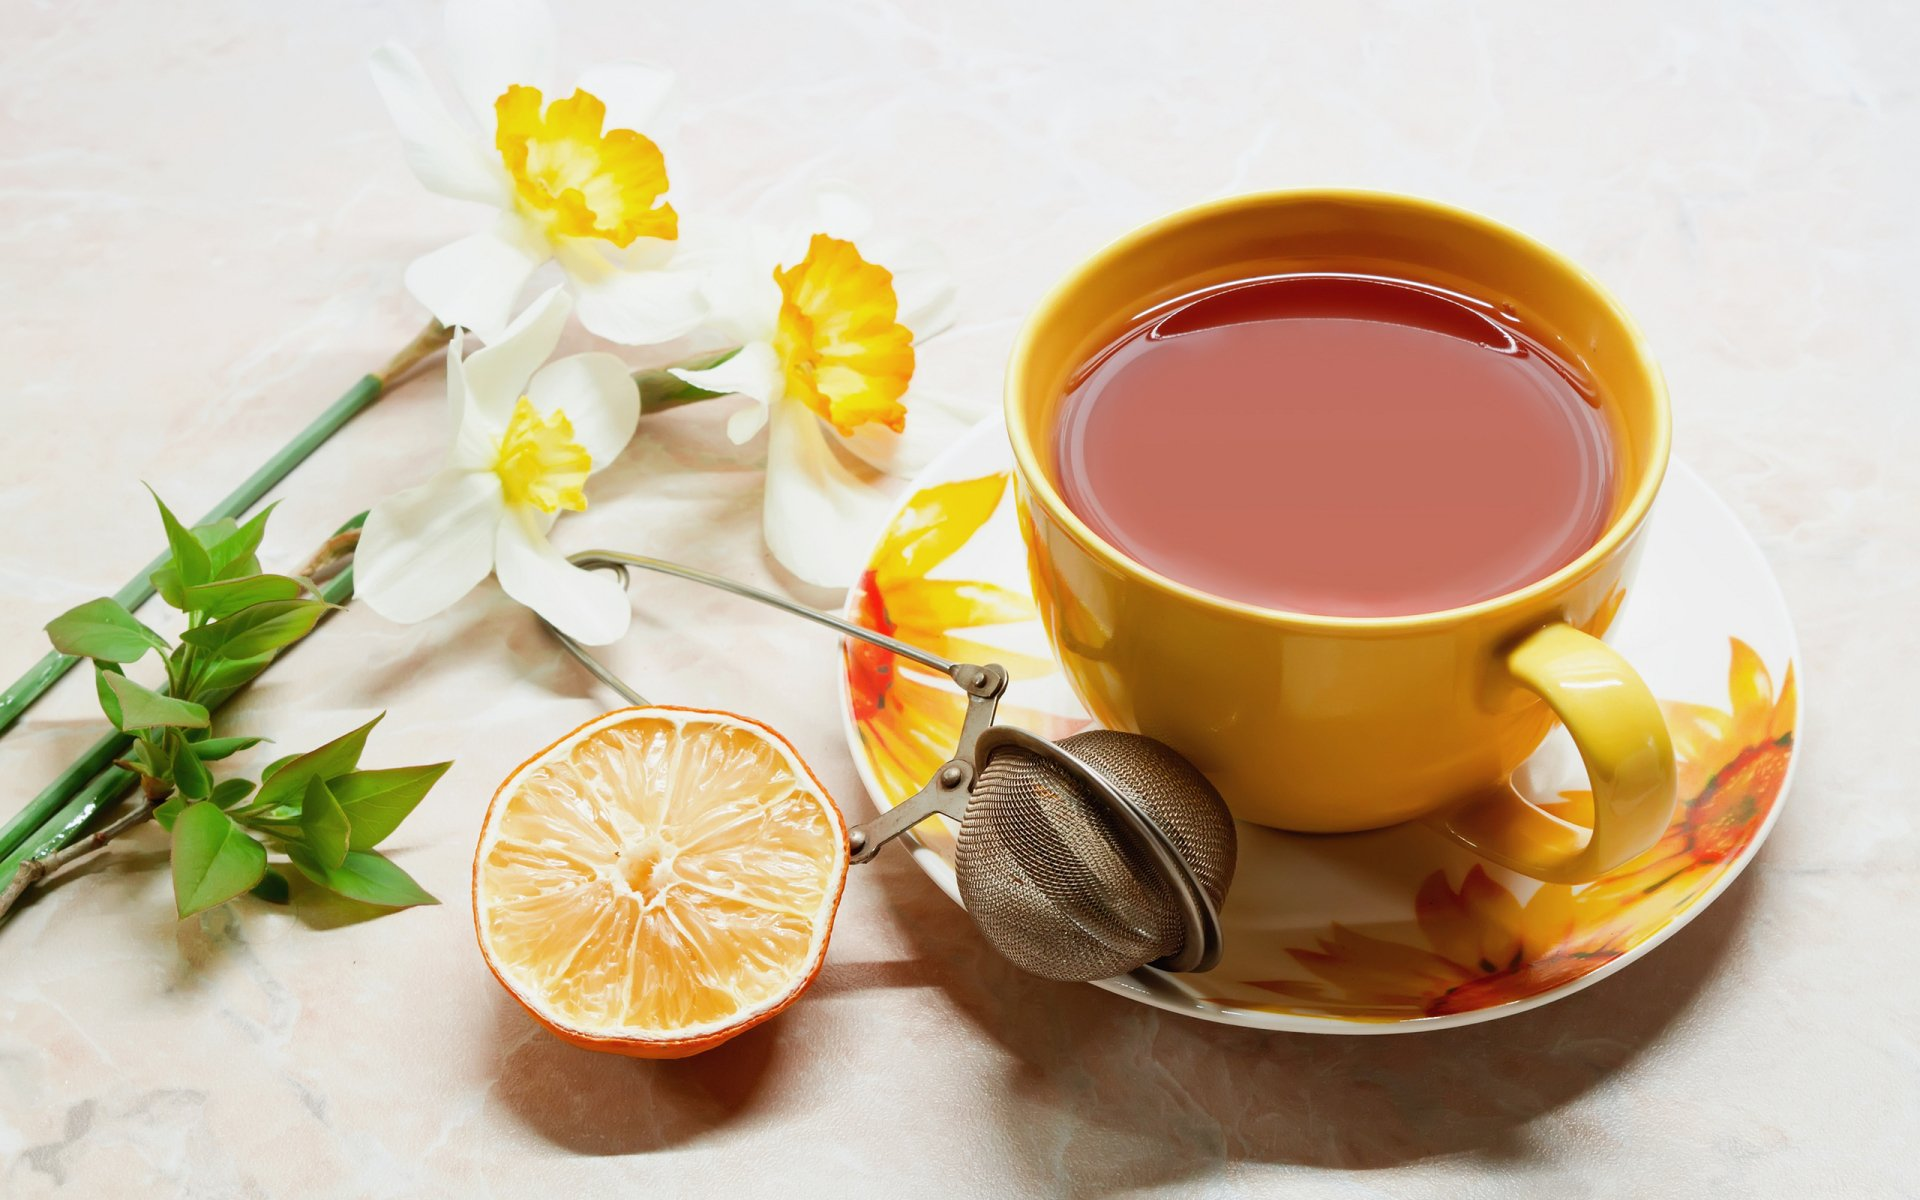 Food - Tea  Still Life Wallpaper